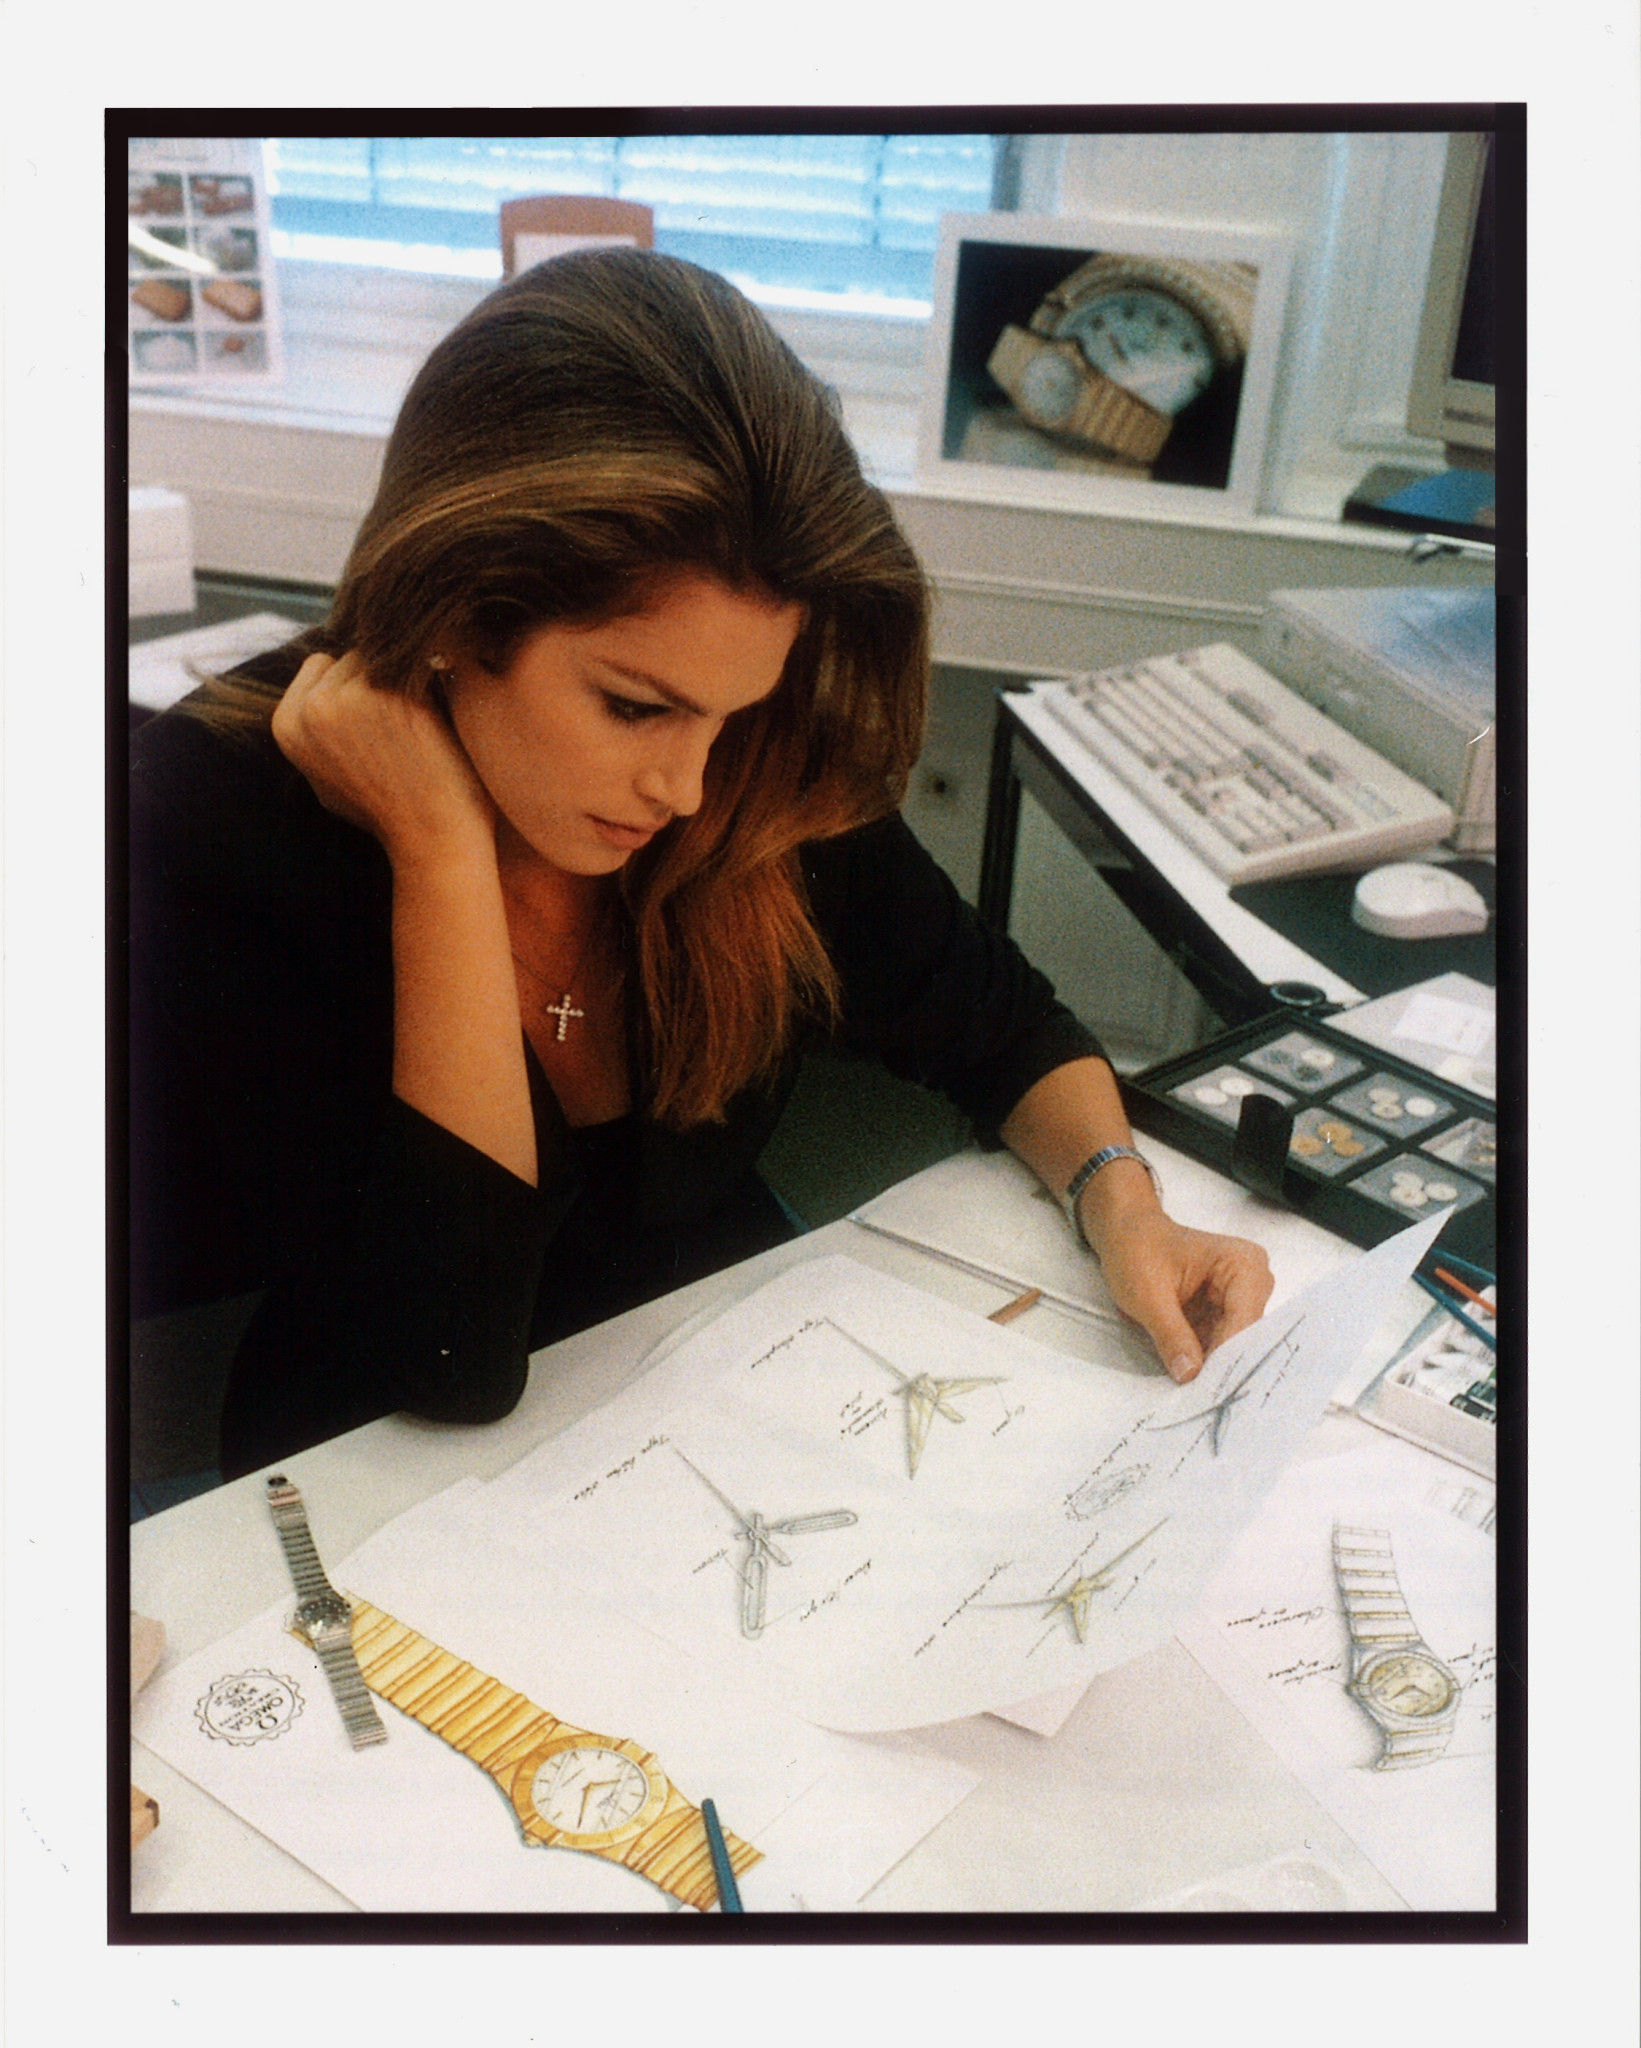 1996_Cindy Crawford working on the Constellation design at Omega in Bienne_1